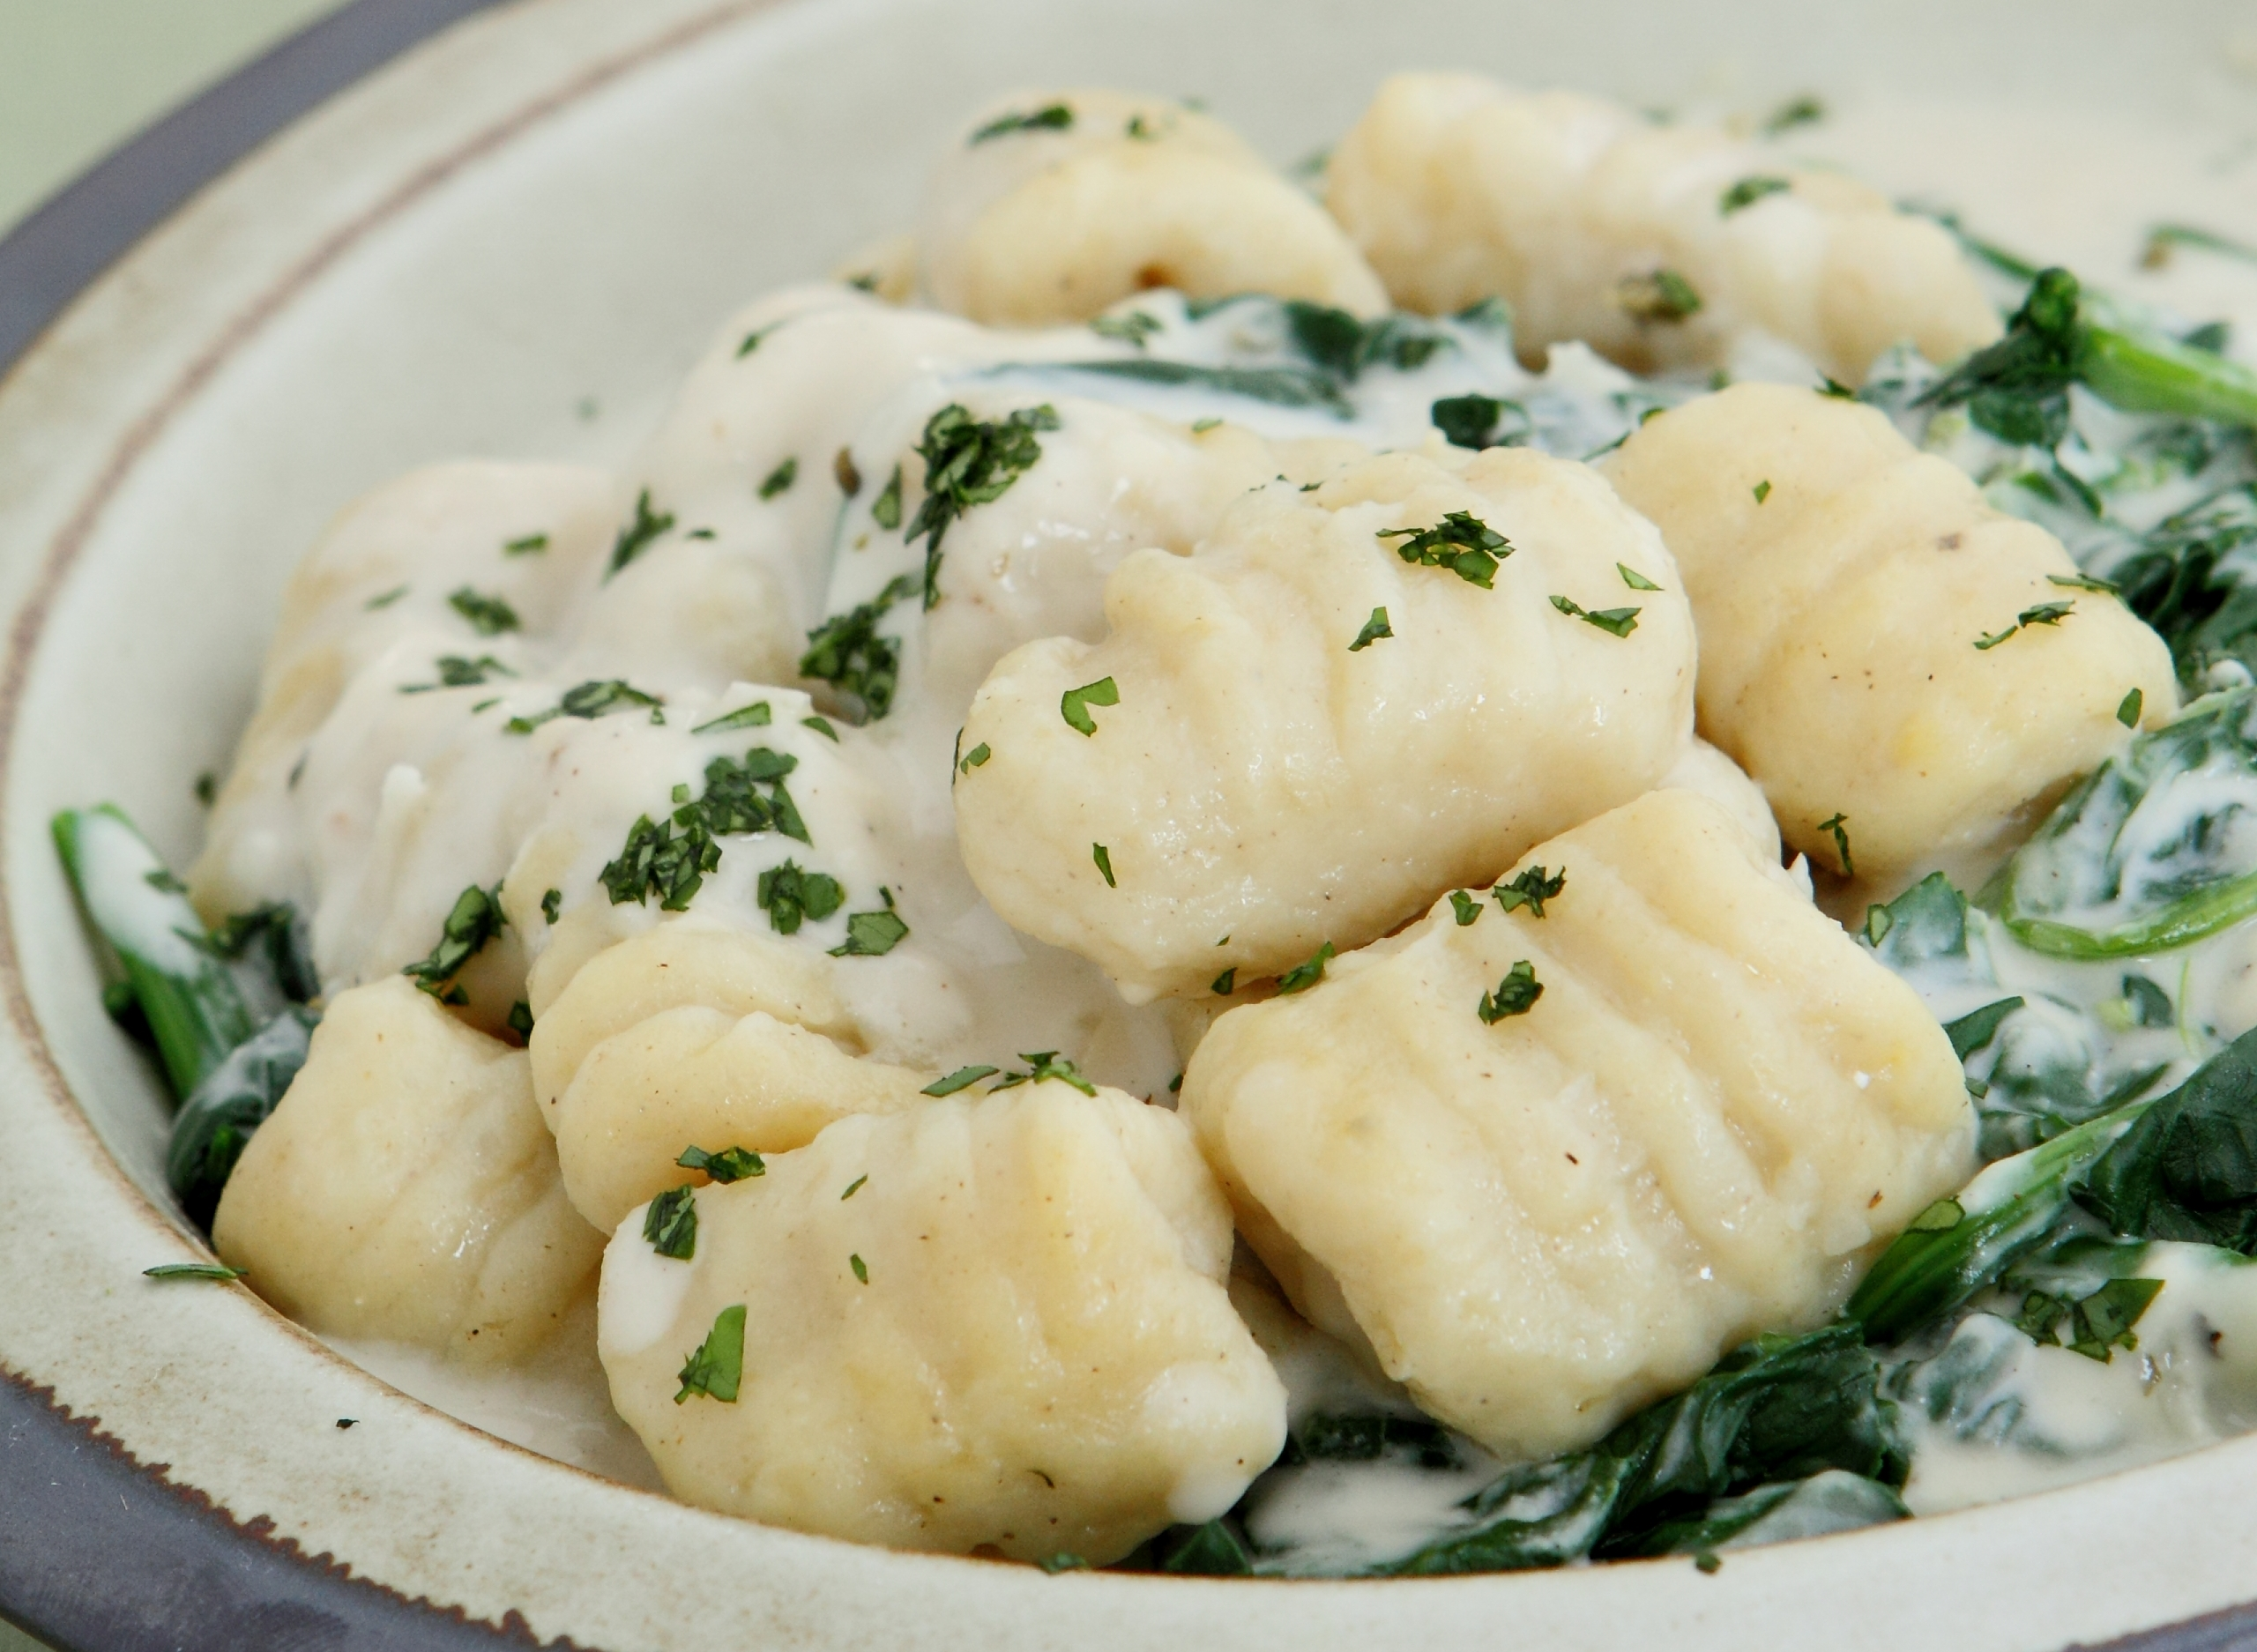 Gnocchi in Cheese Sauce